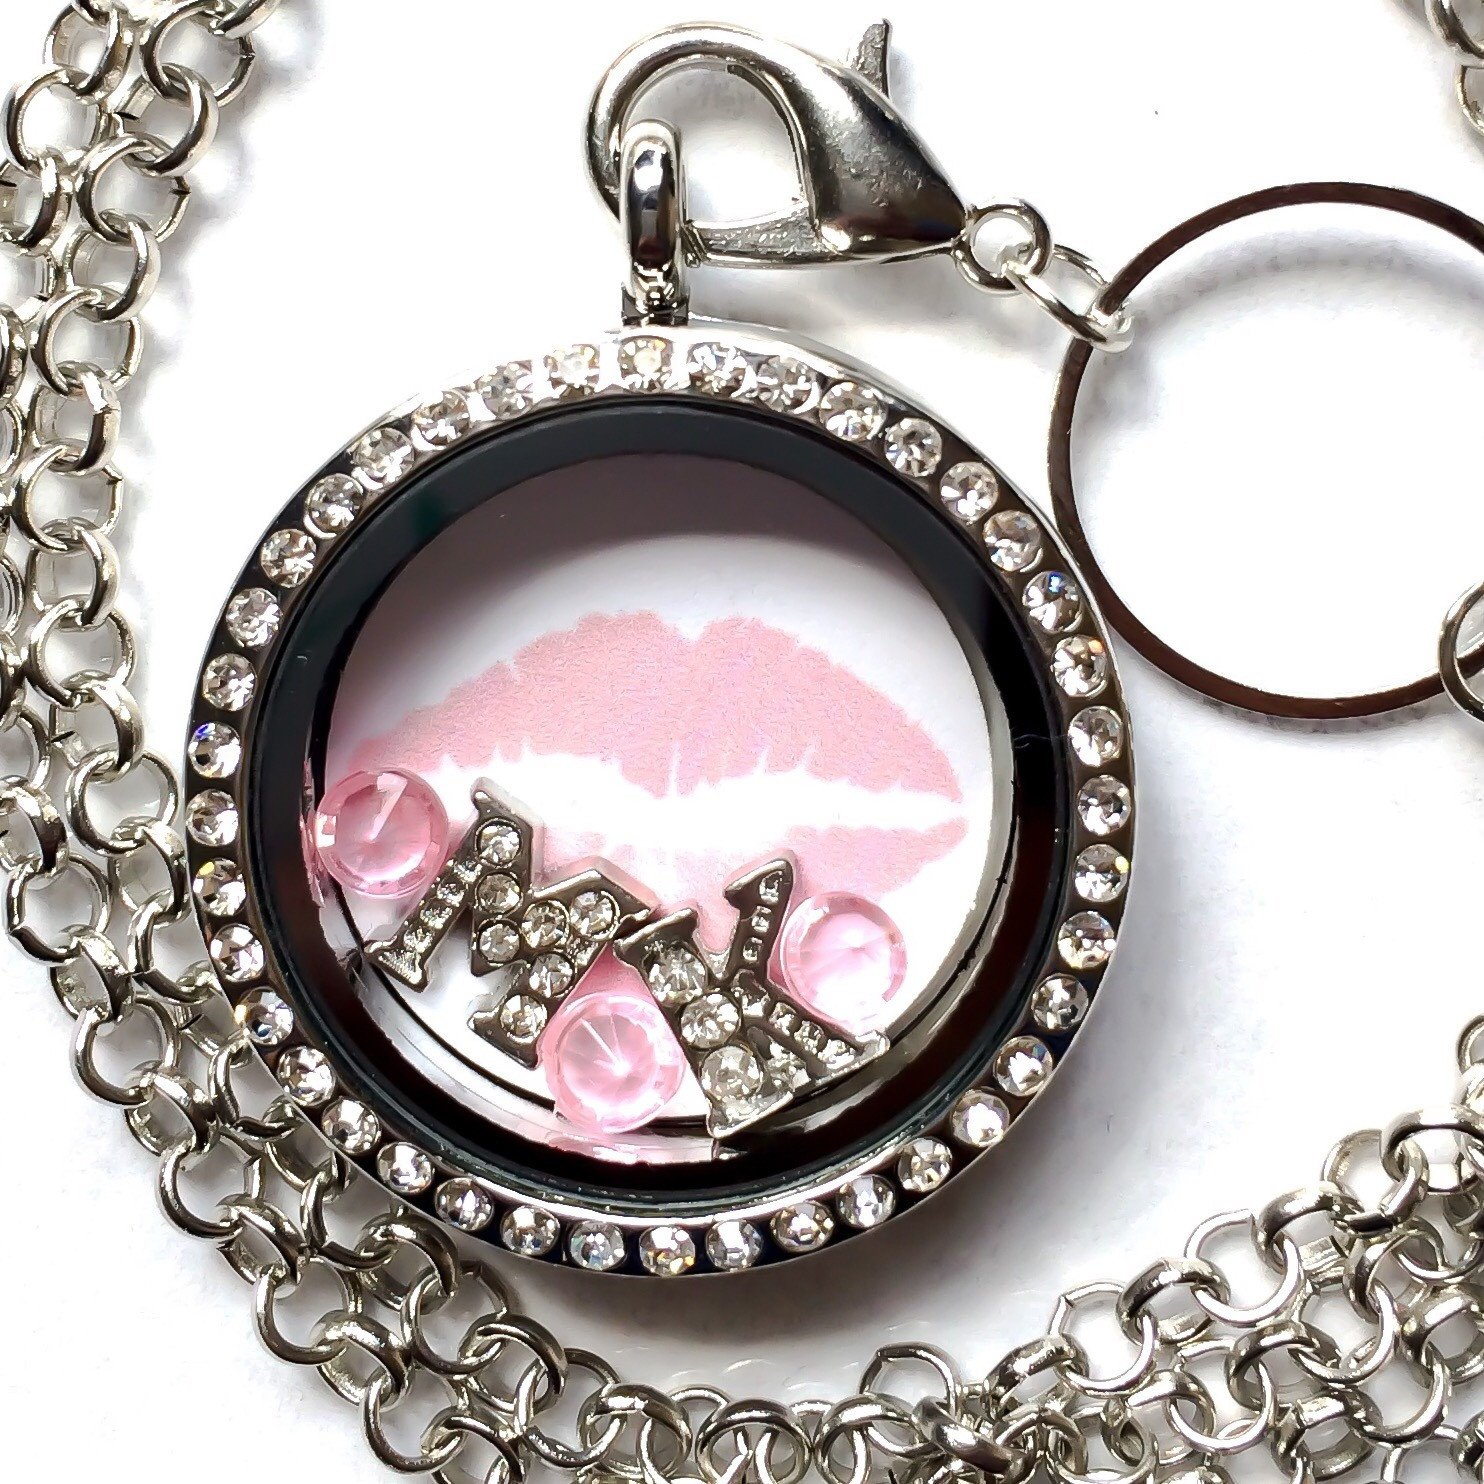 how to find mary kay consultant number